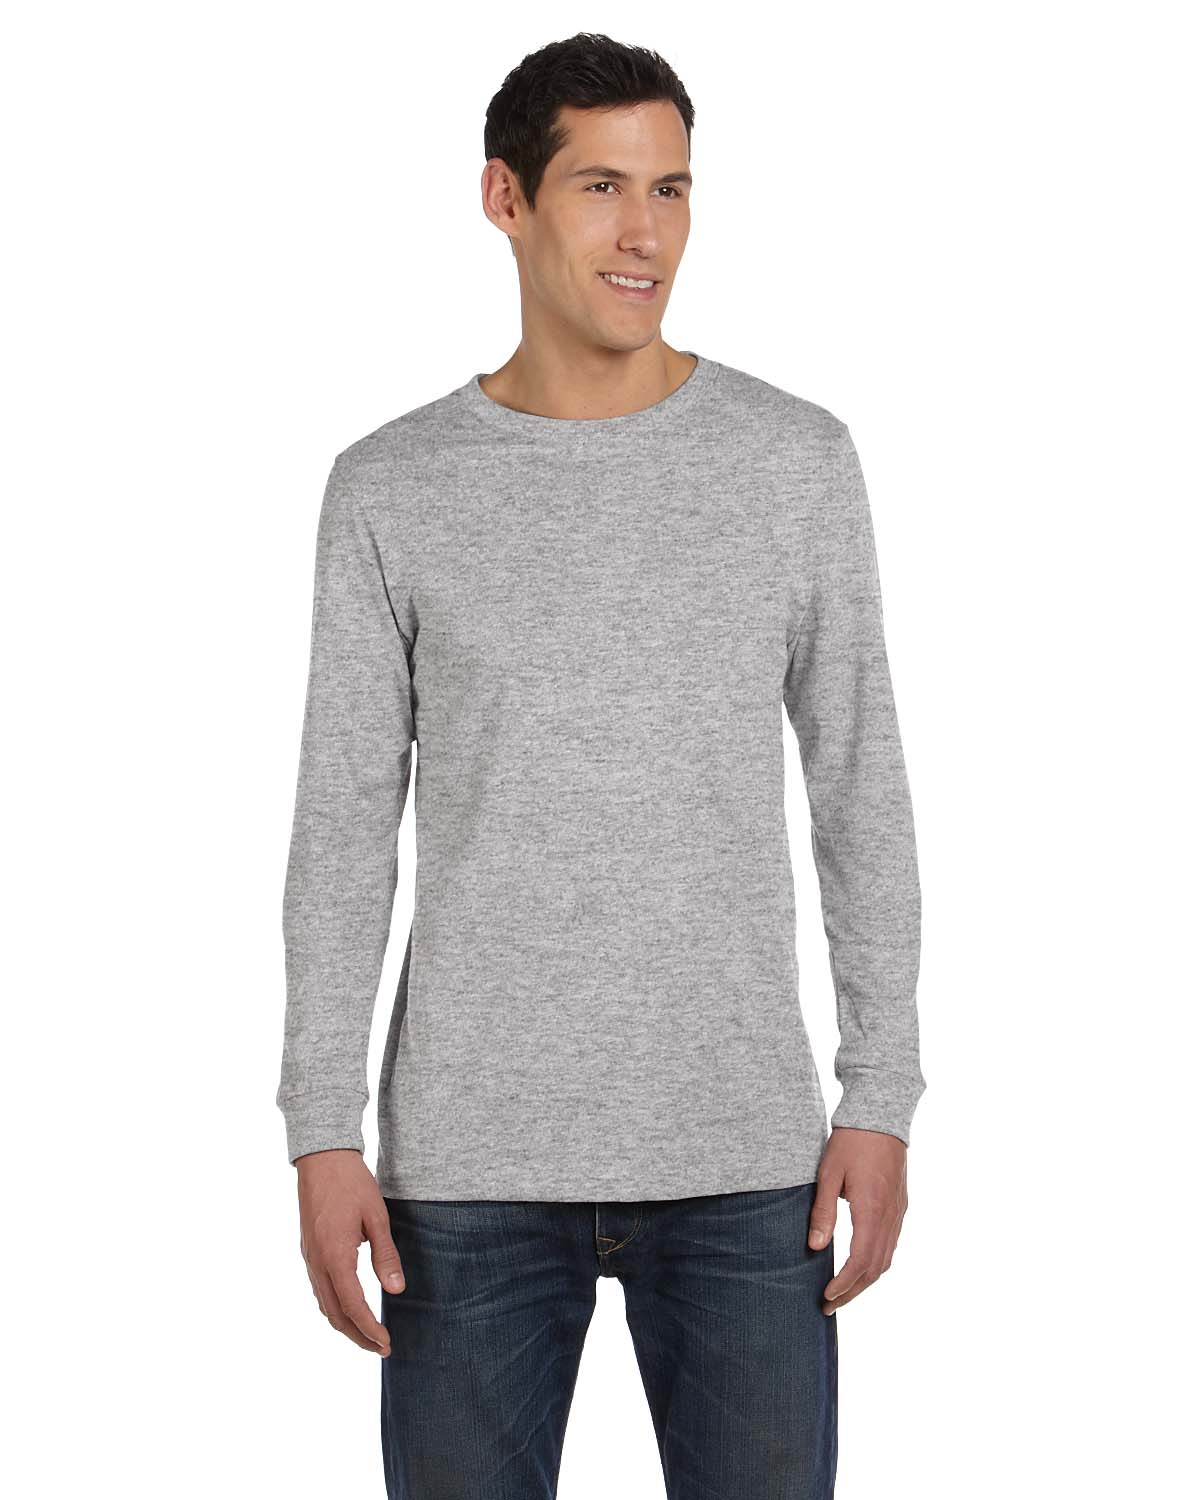 Find great deals on eBay for long sleeve jersey top. Shop with confidence.